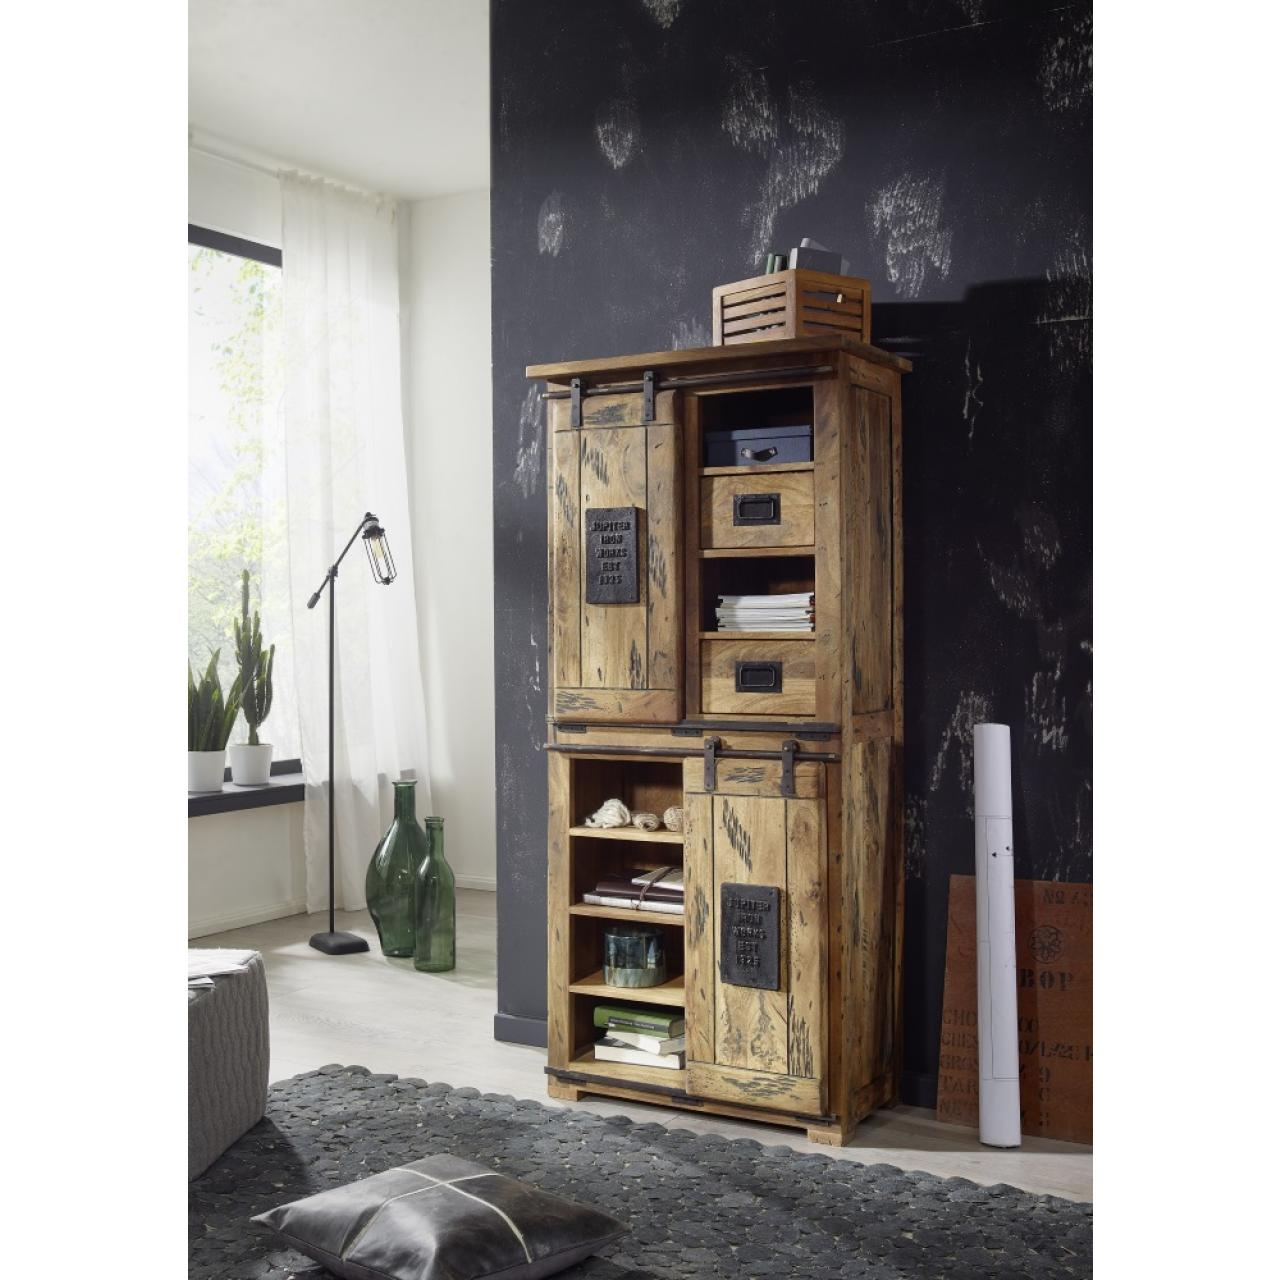 highboards online kaufen m bel j hnichen center gmbh m bel j hnichen center gmbh. Black Bedroom Furniture Sets. Home Design Ideas